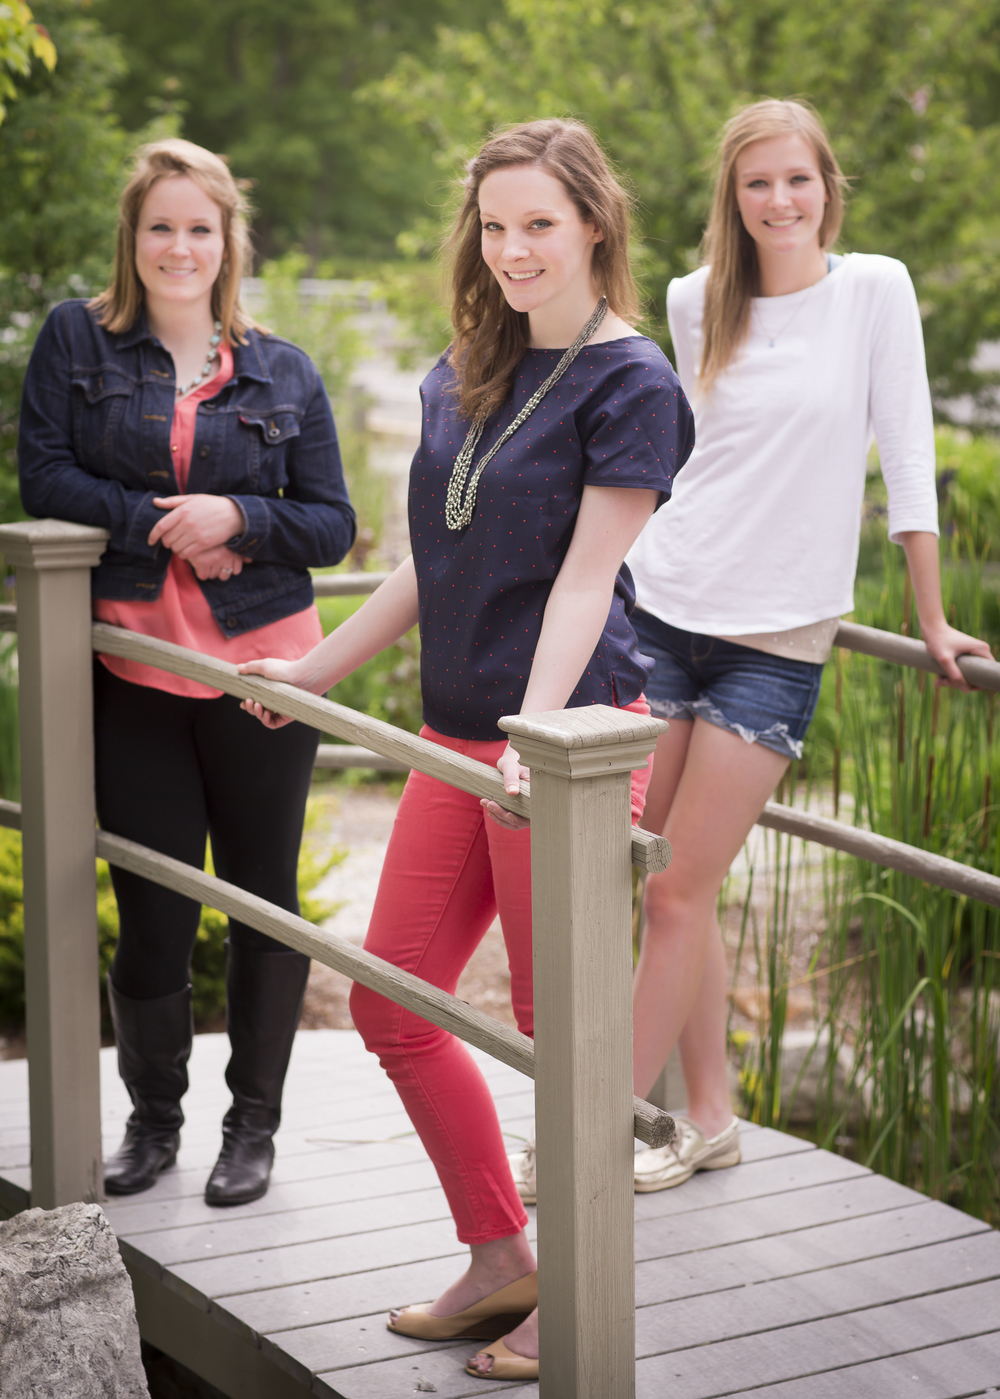 05 3 sisters family portrait outdoor session on bridge.jpg